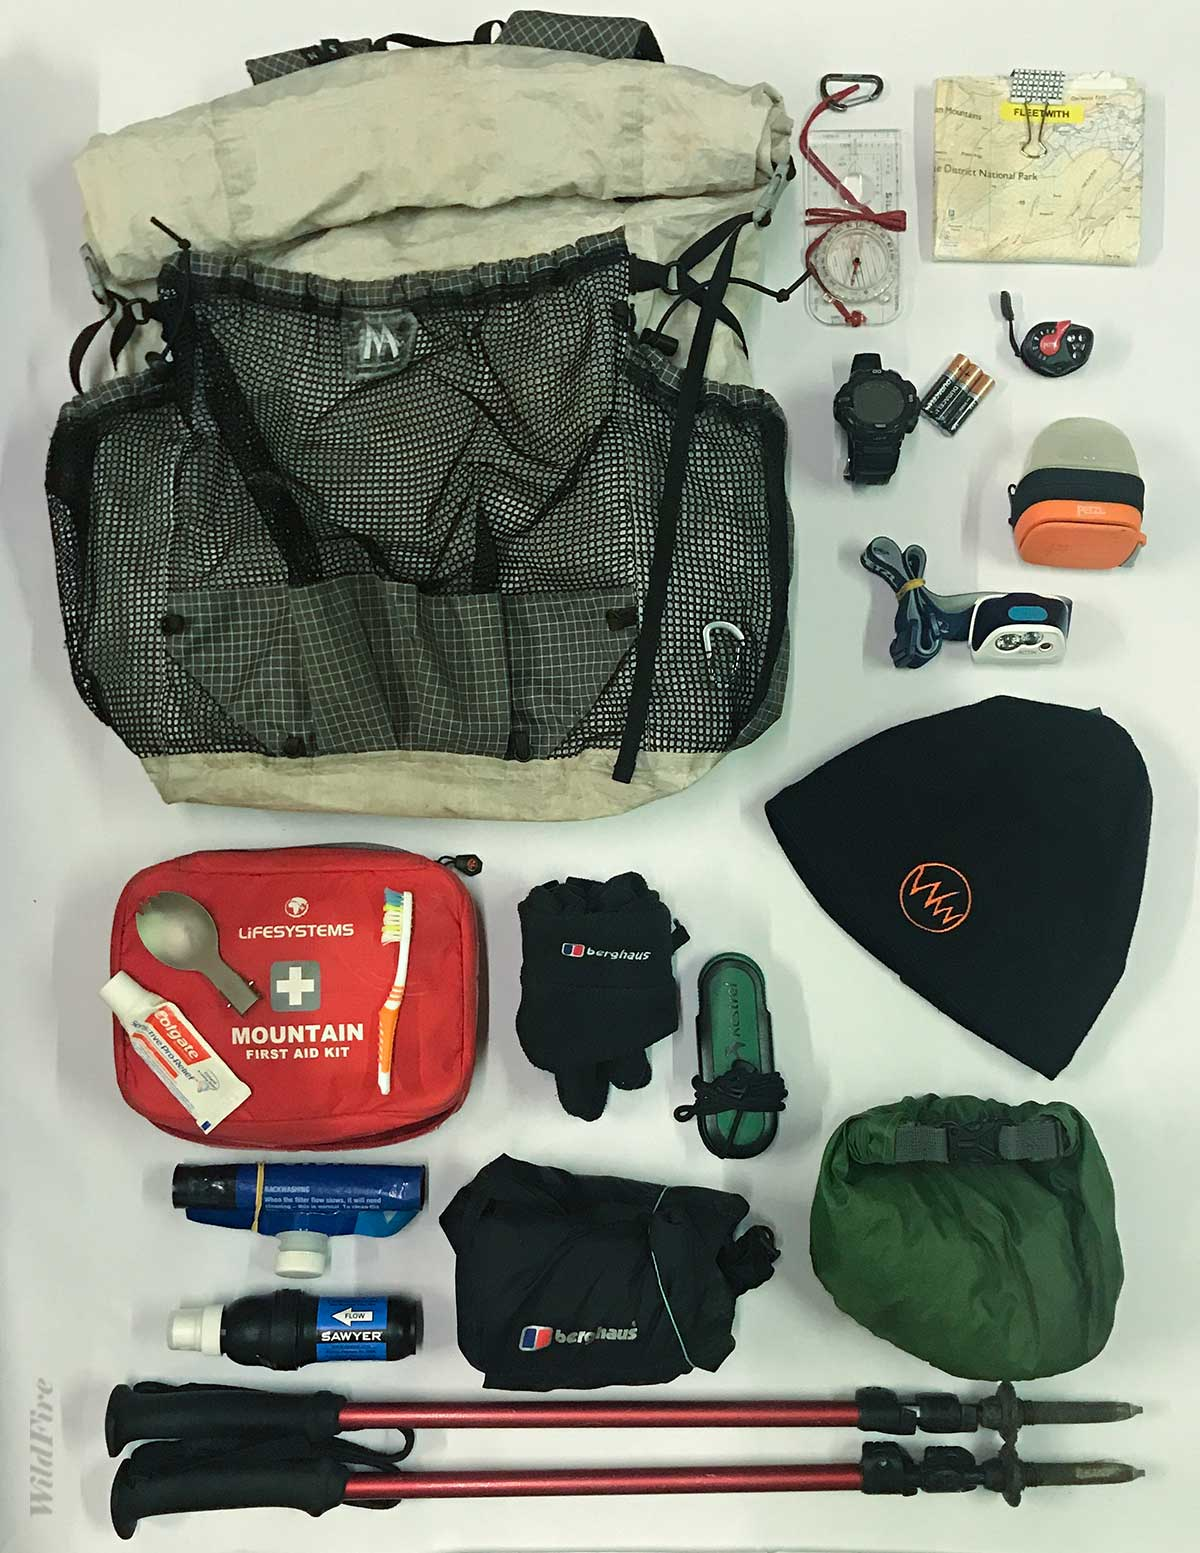 Mountain walking kit list